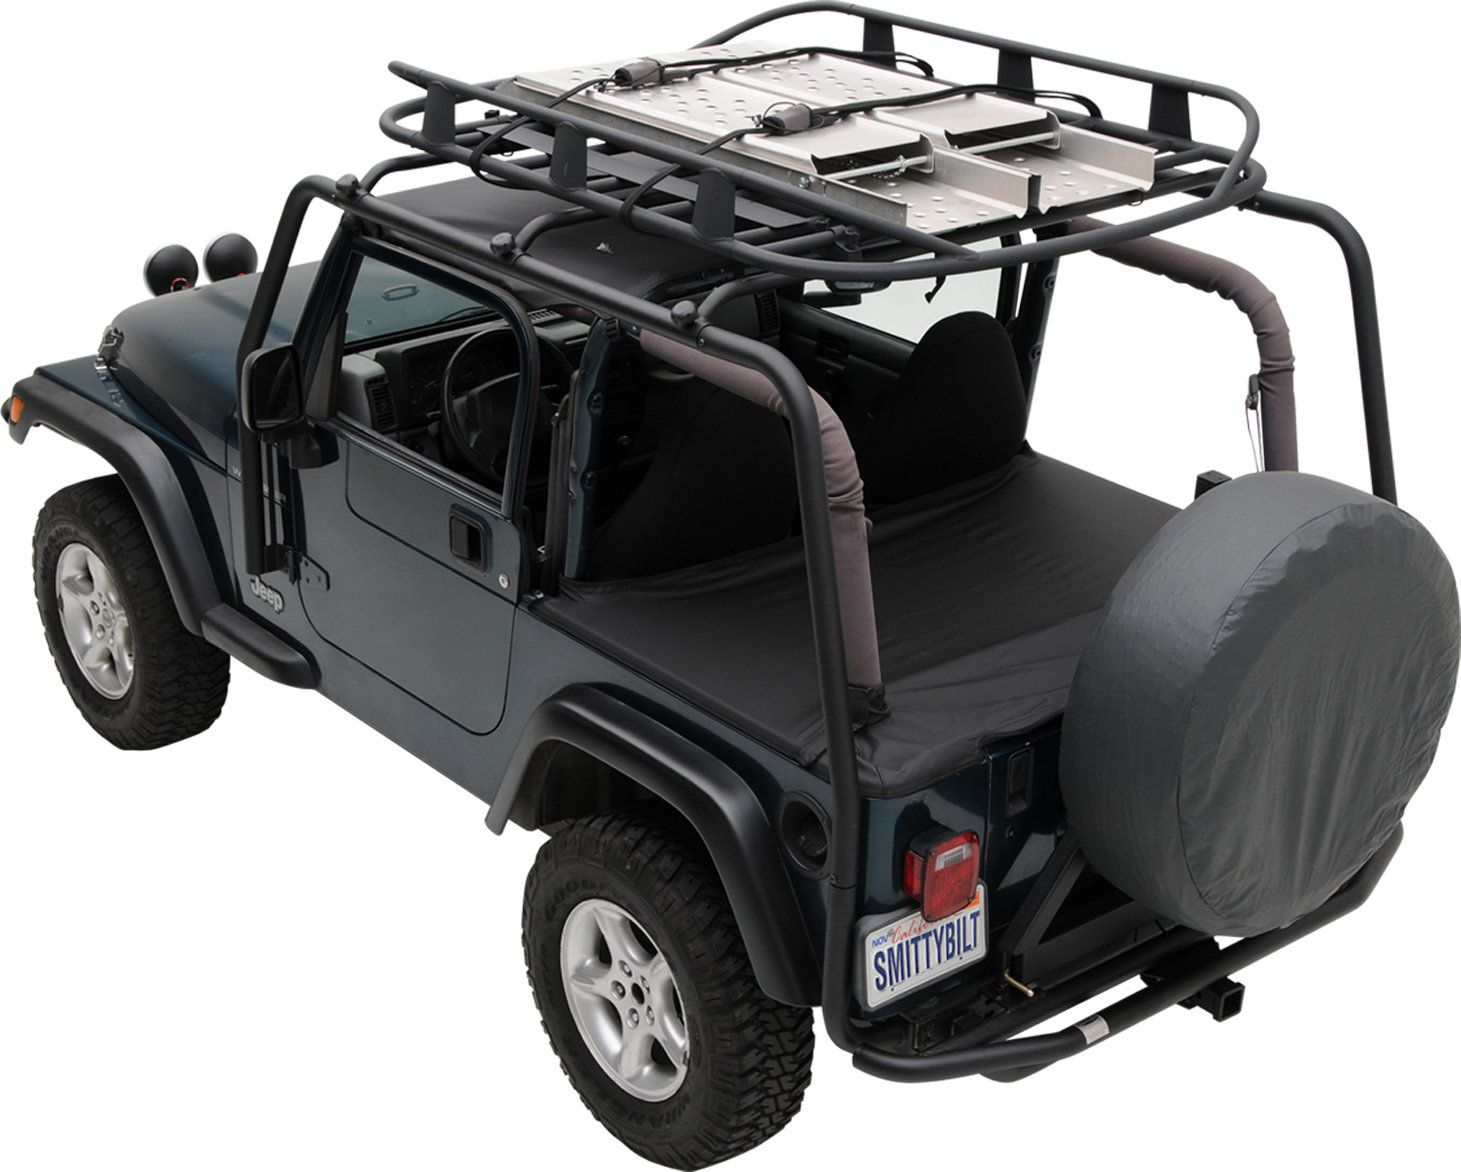 Constructed From High Quality Steel Tubing And Supported With Heavy Duty Bracketry The Smittybilt Src Roof Rack Roof Rack 2006 Jeep Wrangler Jeep Wrangler Jk